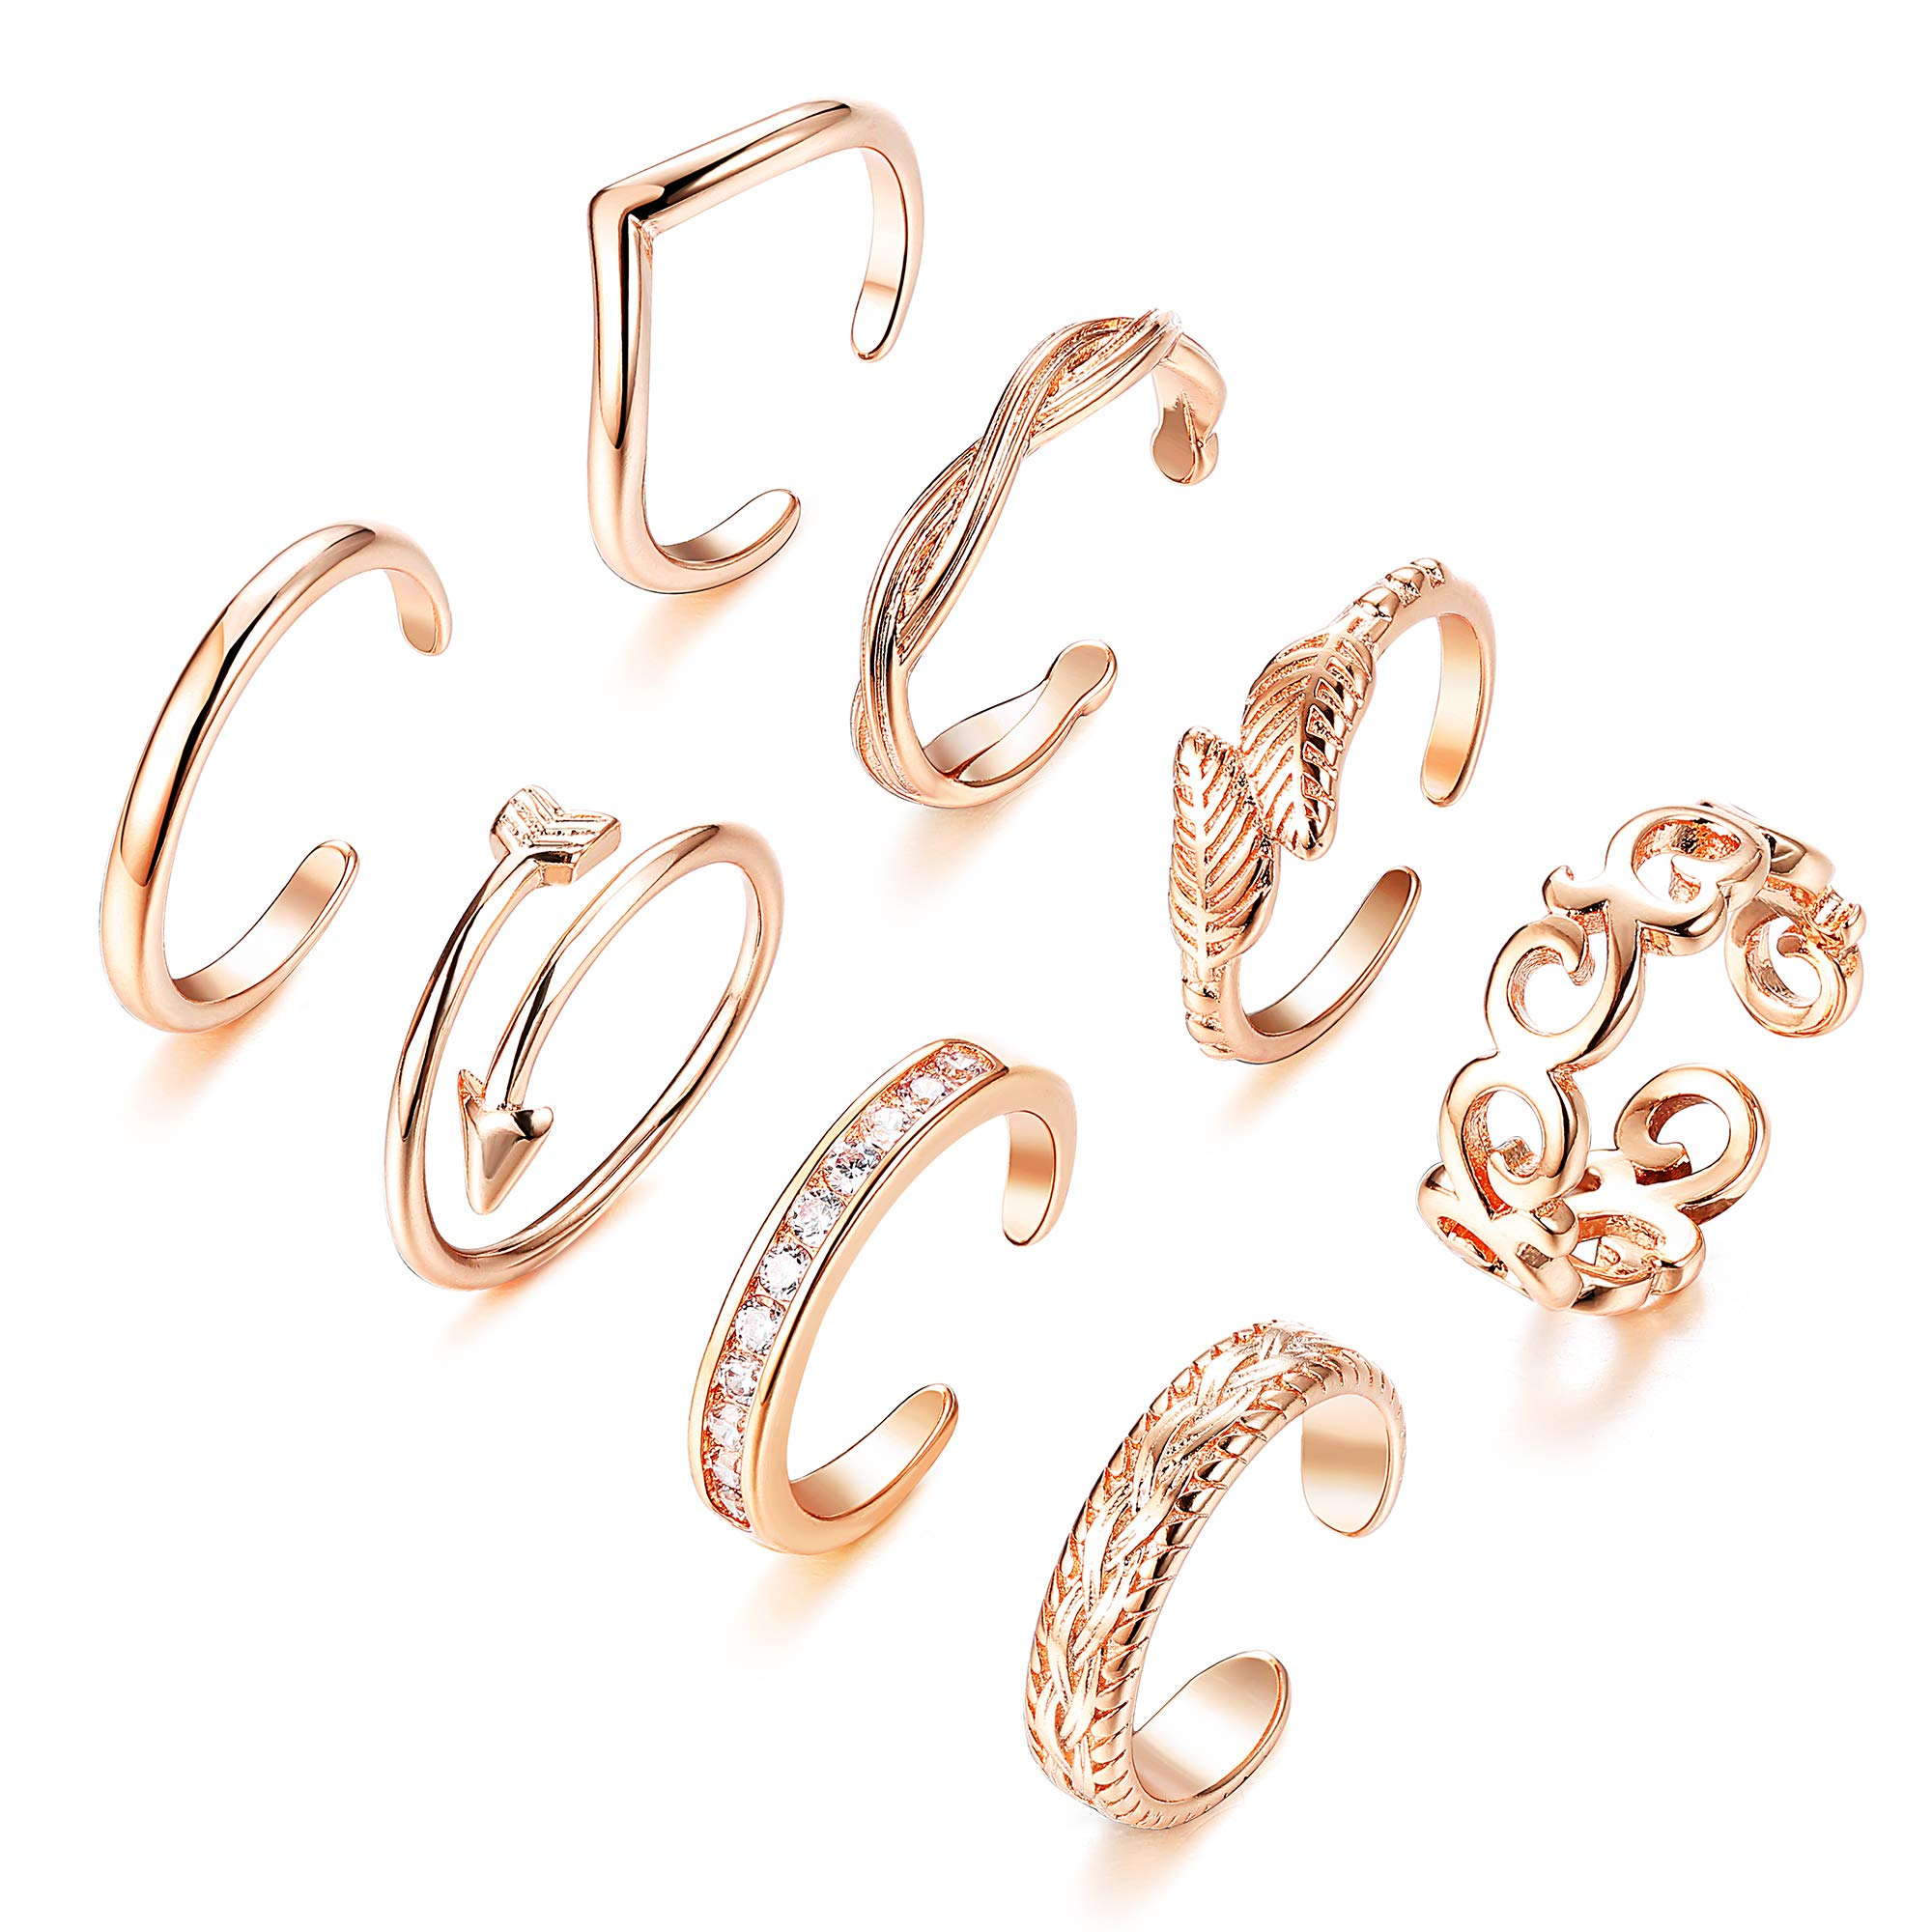 Finrezio 8PCS Adjustable Toe Ring for Women Girls Open Tail Ring Flower Knot Simple Toe Ring Gifts Jewelry Set by Finrezio